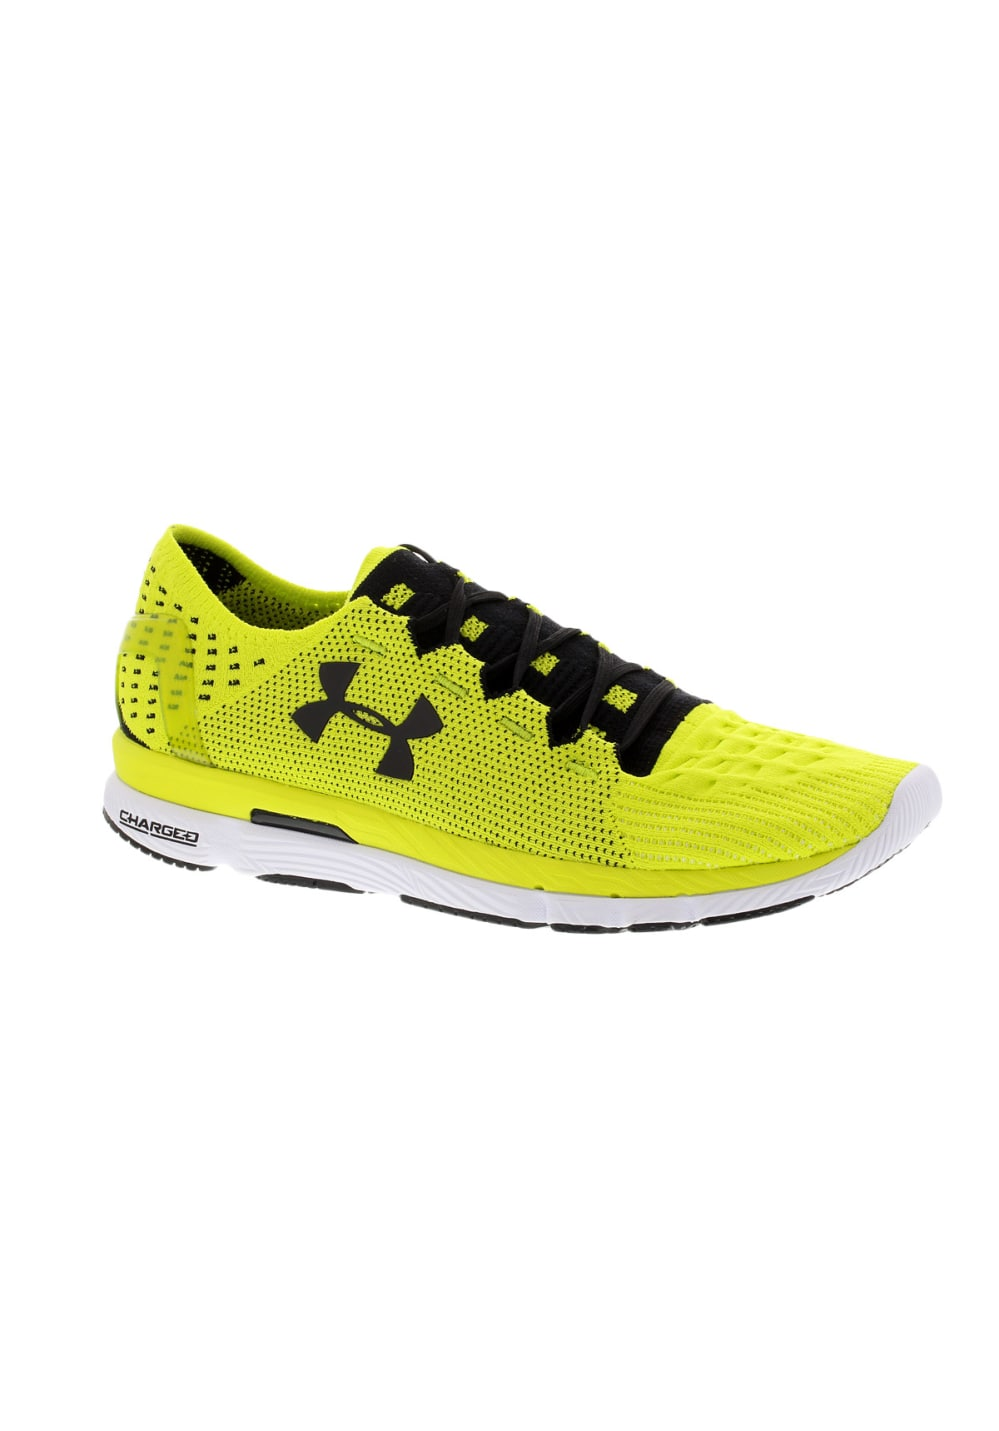 under armour speedform slingshot laufschuhe f r herren gelb 21run. Black Bedroom Furniture Sets. Home Design Ideas